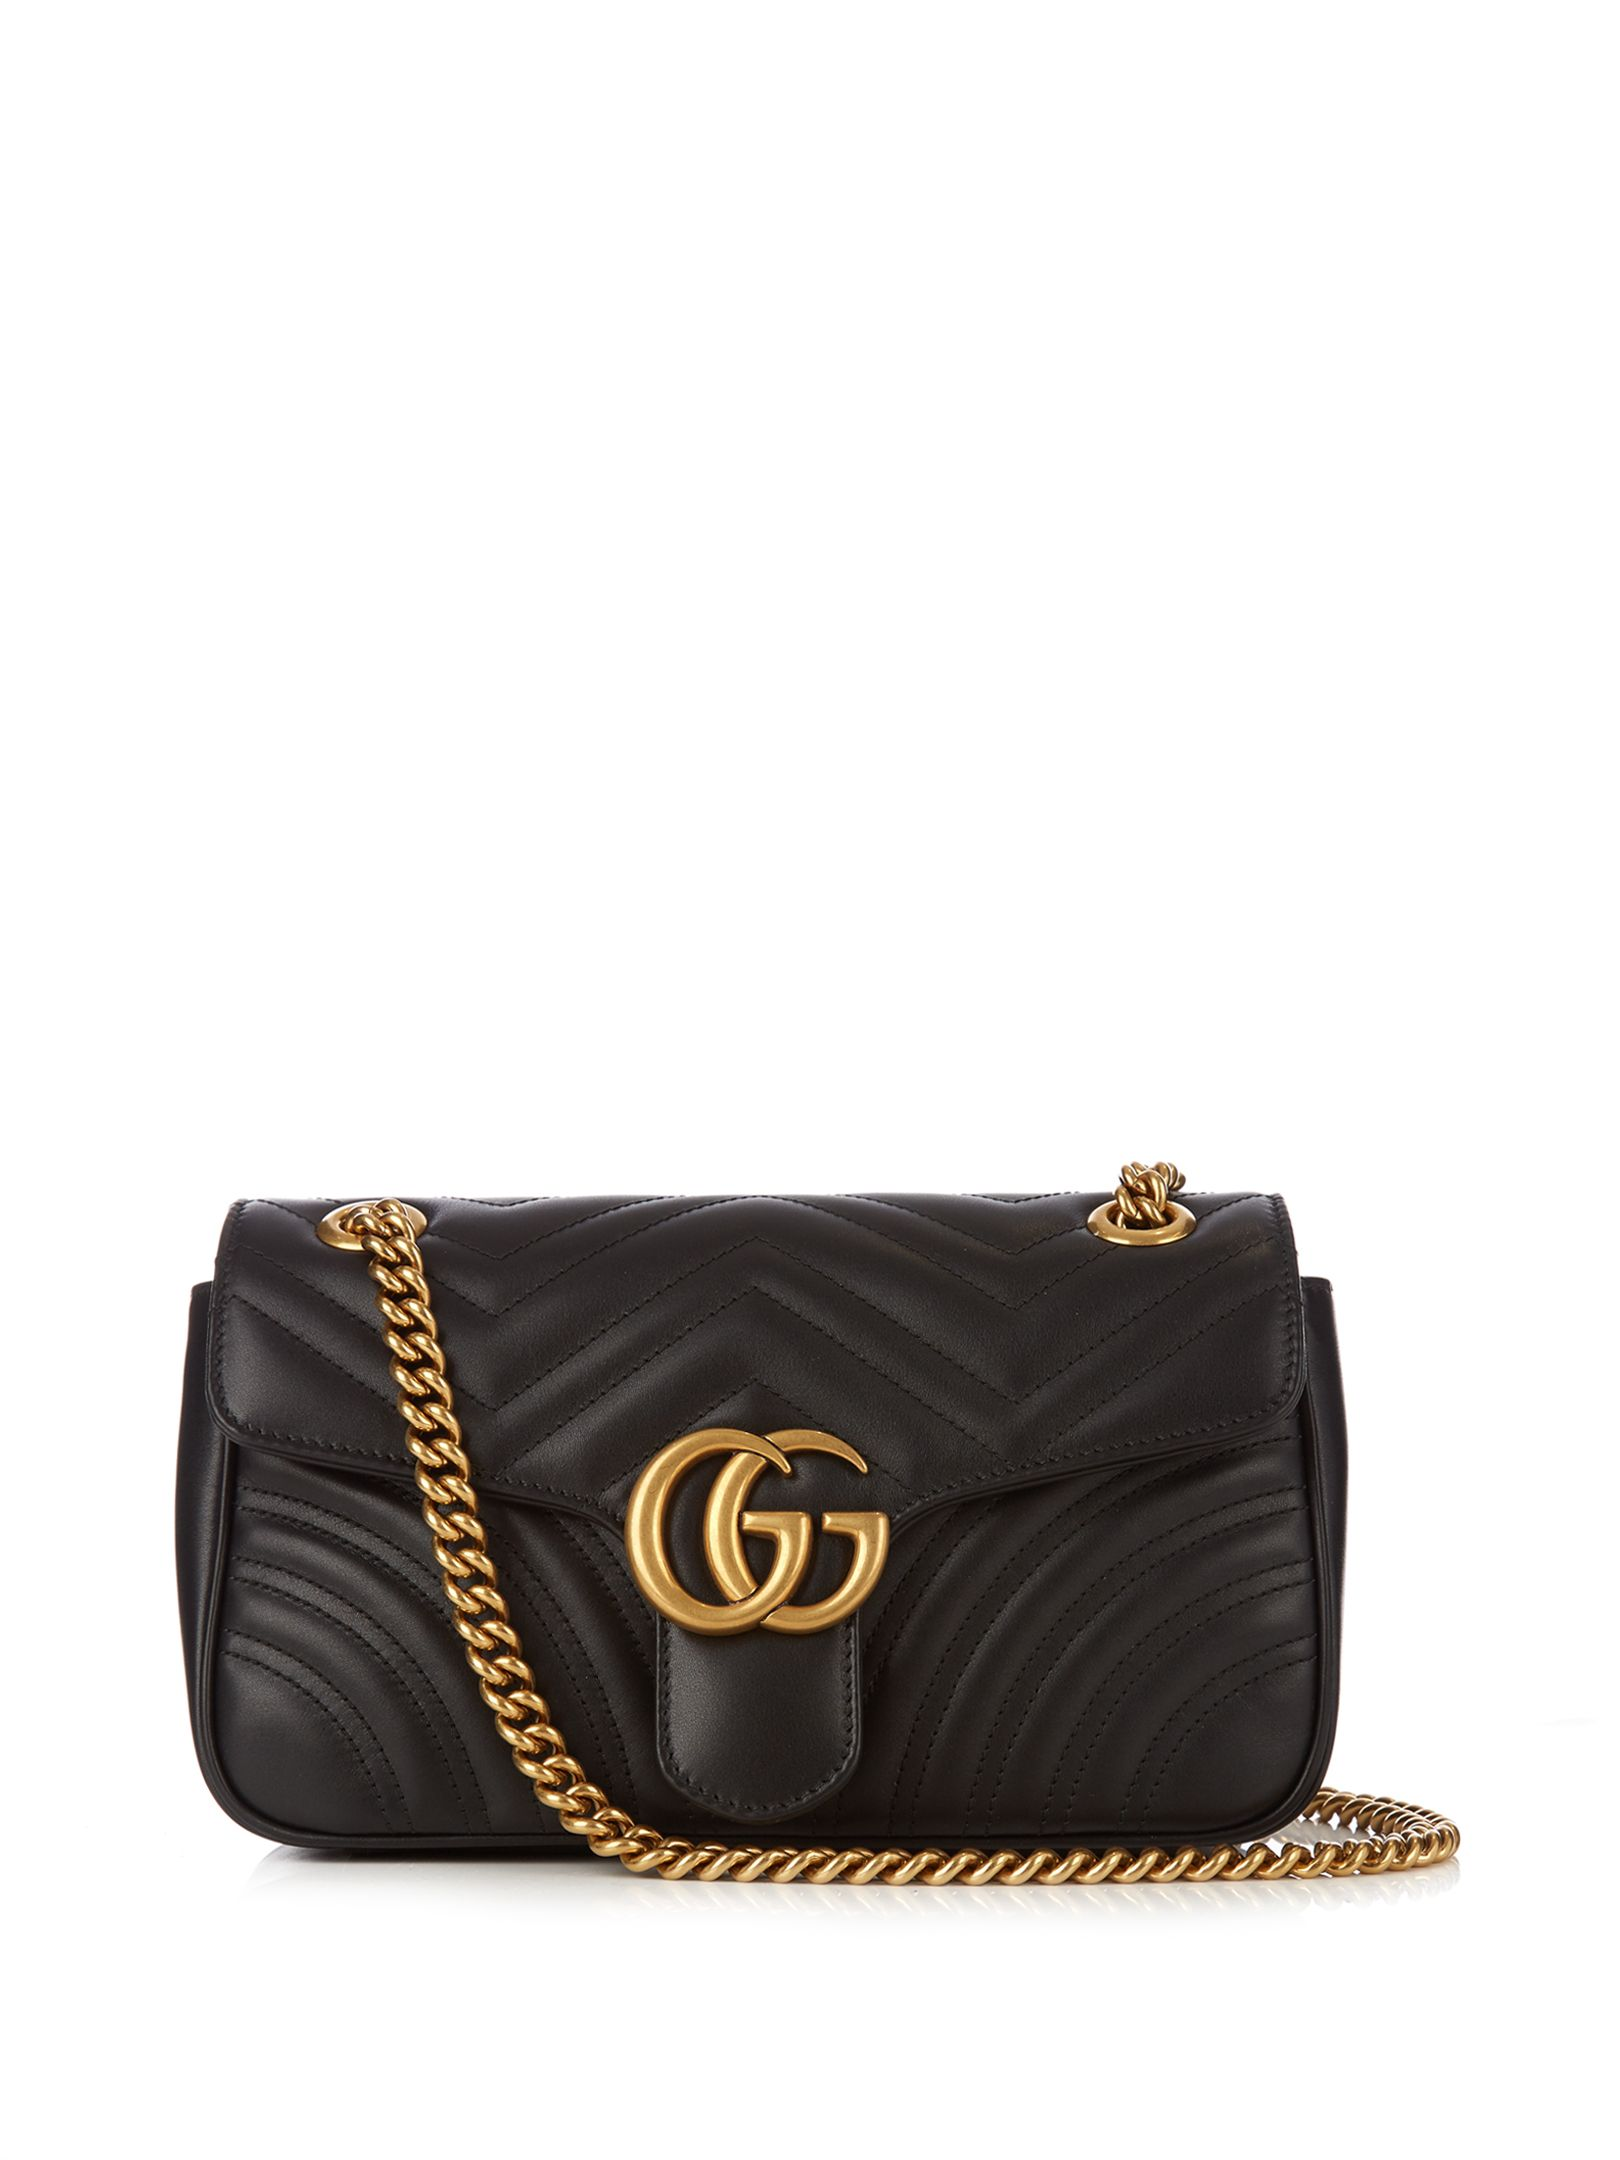 36f8d03b086e GG Marmont small quilted-leather bag